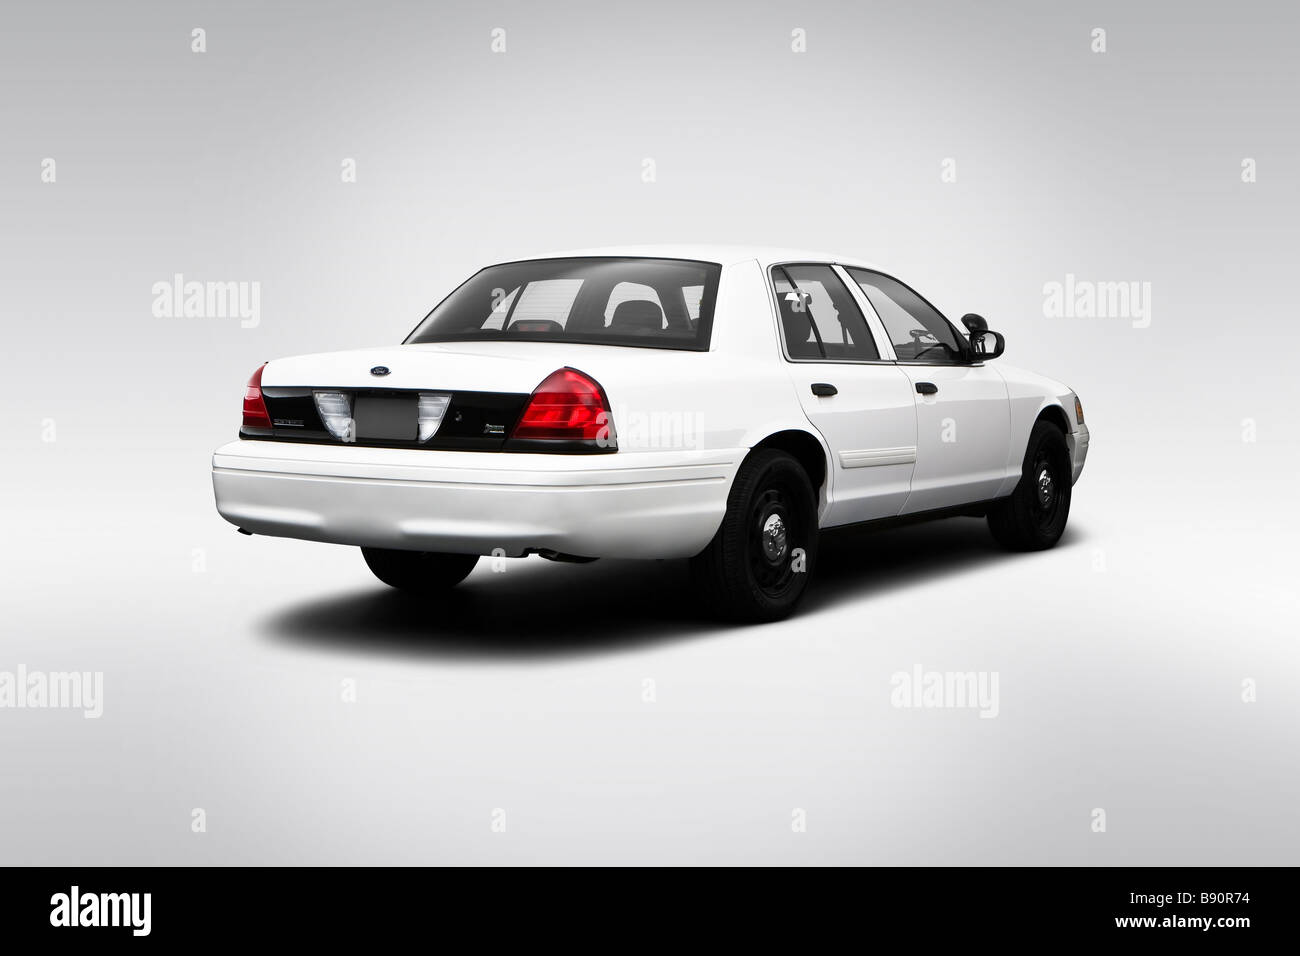 2009 ford crown victoria police interceptor in white rear angle view